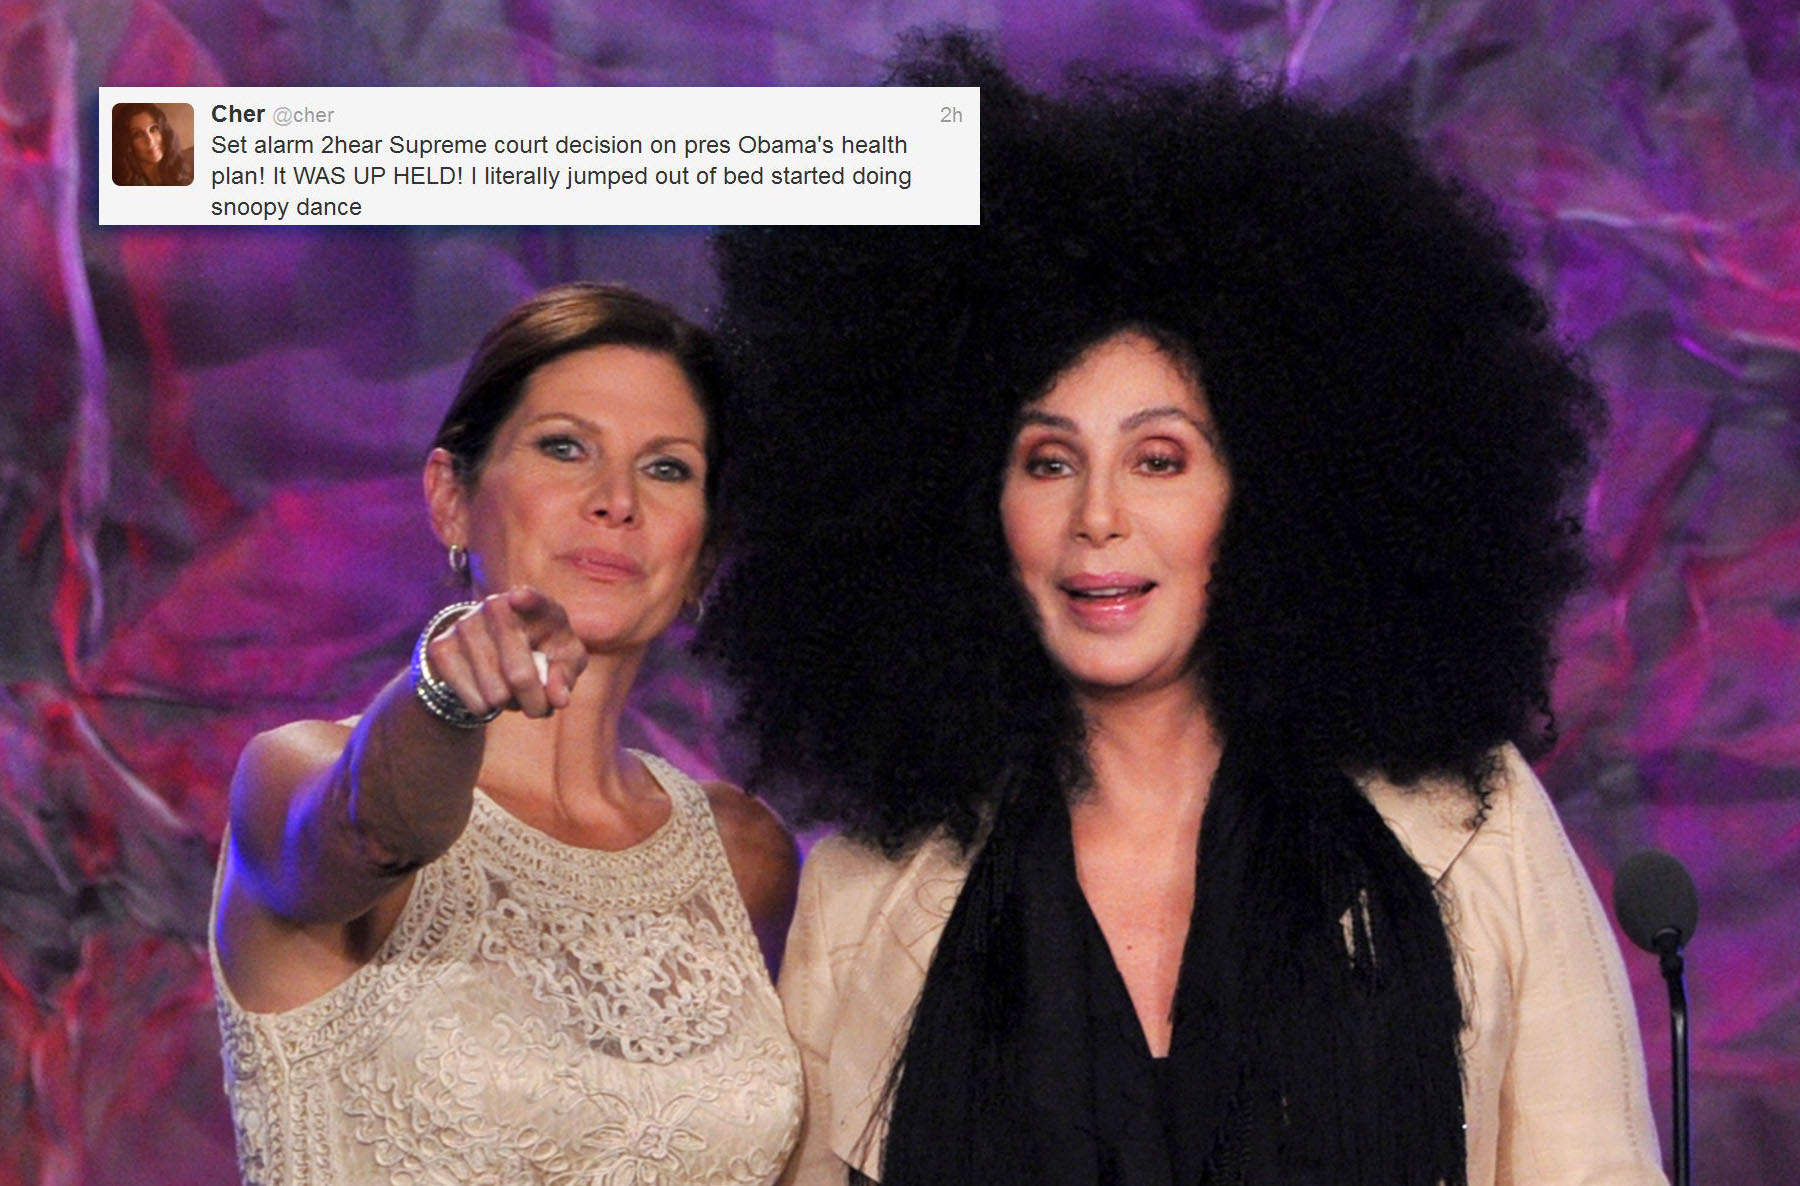 "Singer Cher -- @cher: ""Set alarm 2hear Supreme court decision on pres Obama's health plan! It WAS UP HELD! I literally jumped out of bed started doing snoopy dance"" (Kevin Winter/Getty Images for GLAAD, Rep. Mary Bono Mack also picutred)"